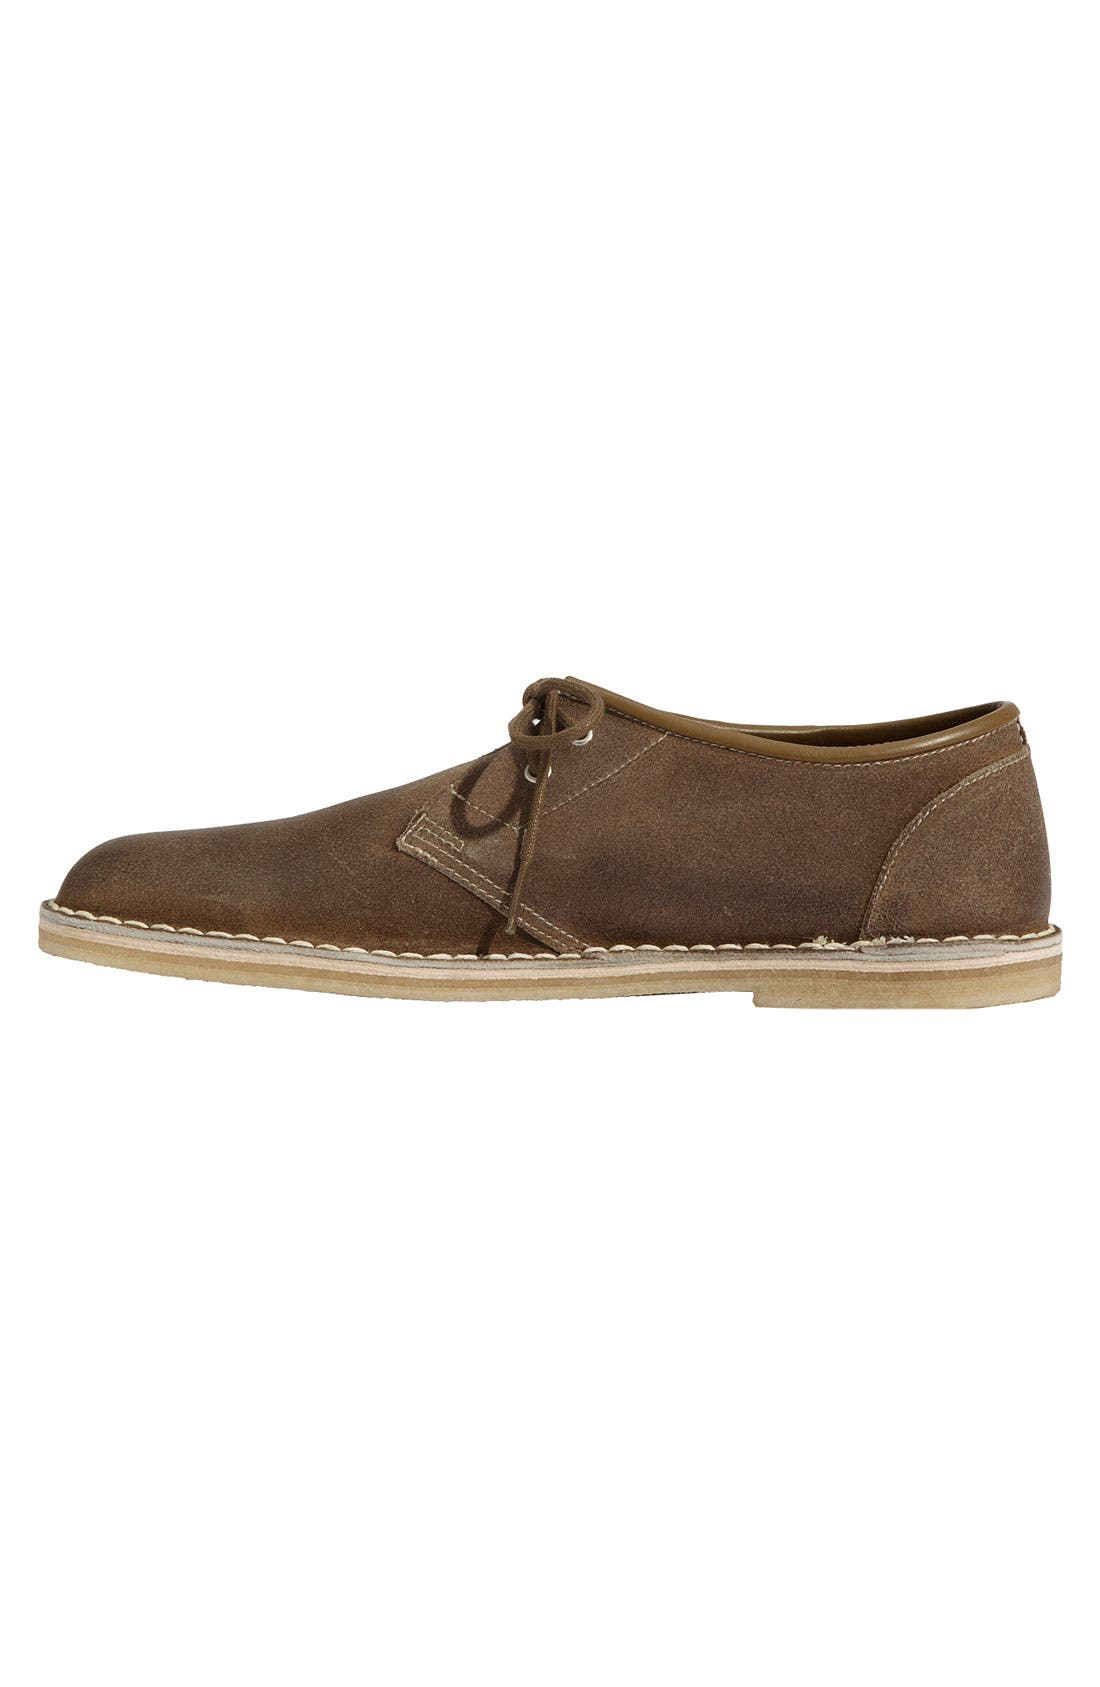 Alternate Image 2  - Clarks® Originals 'Jink' Oxford   (Men)